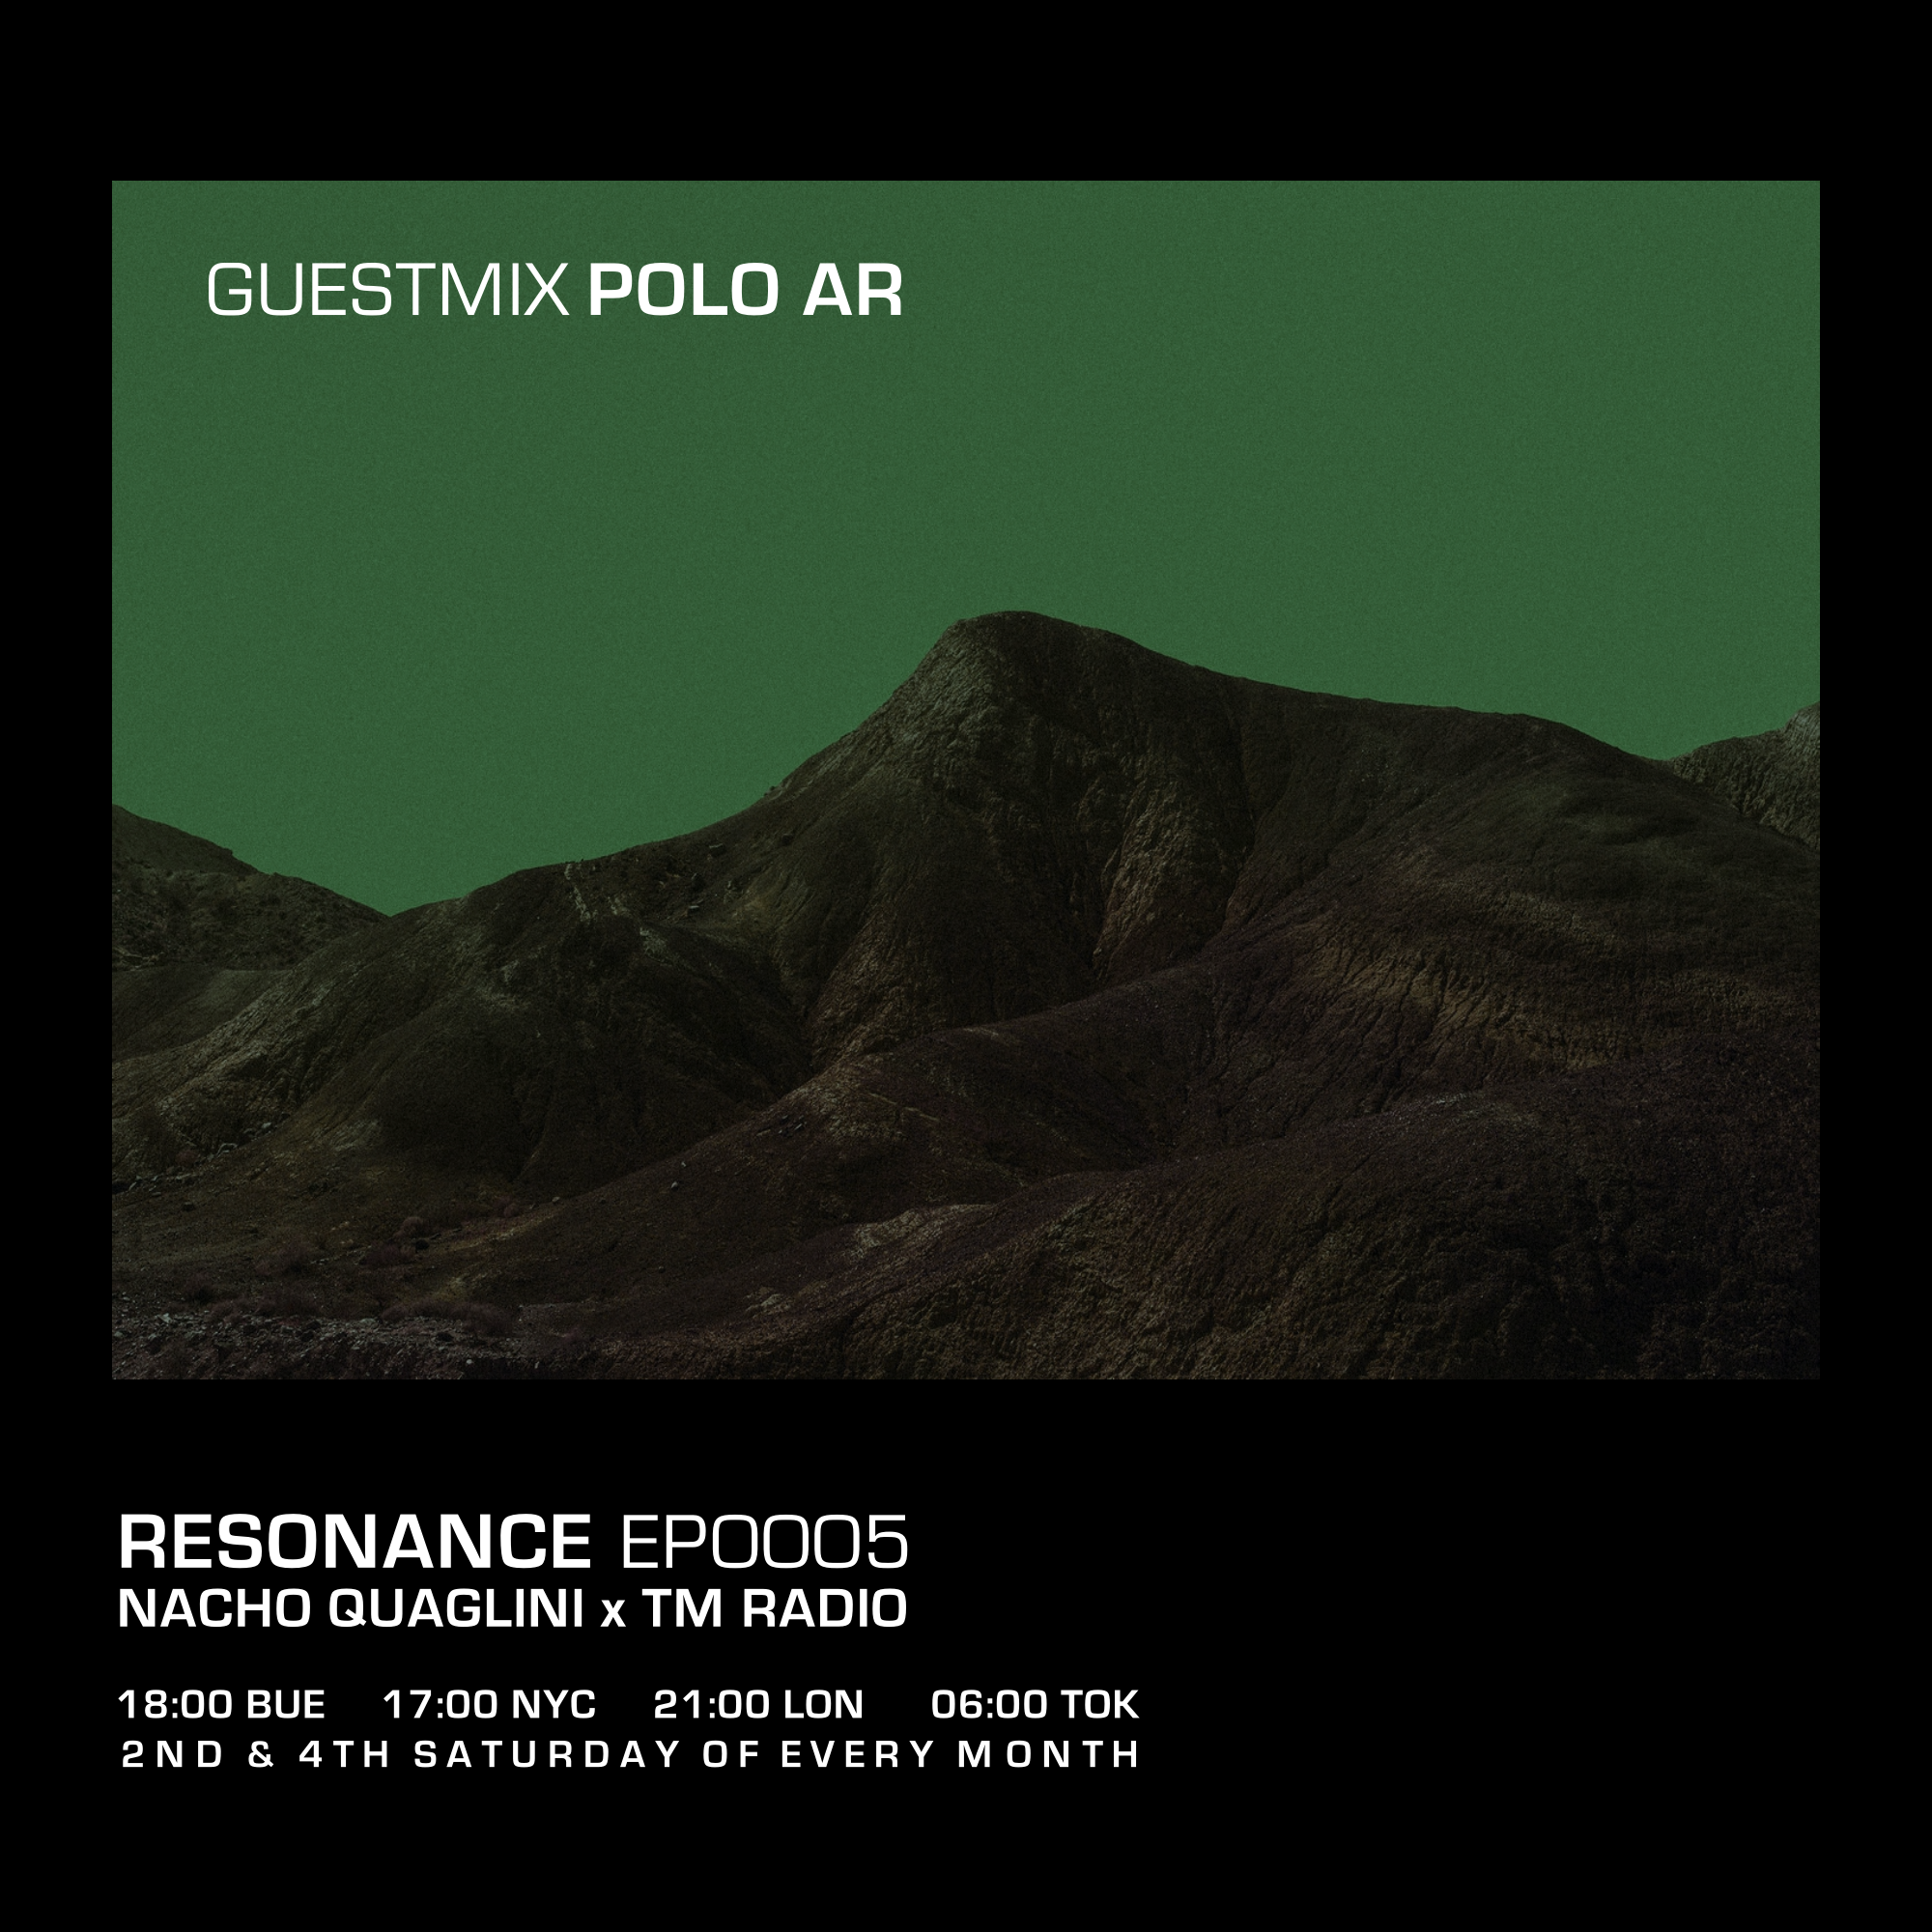 Resonance :: Resonance / Ep. 0005 / October 2020 / Guestmix: Polo AR (aired on October 24th, 2020) banner logo